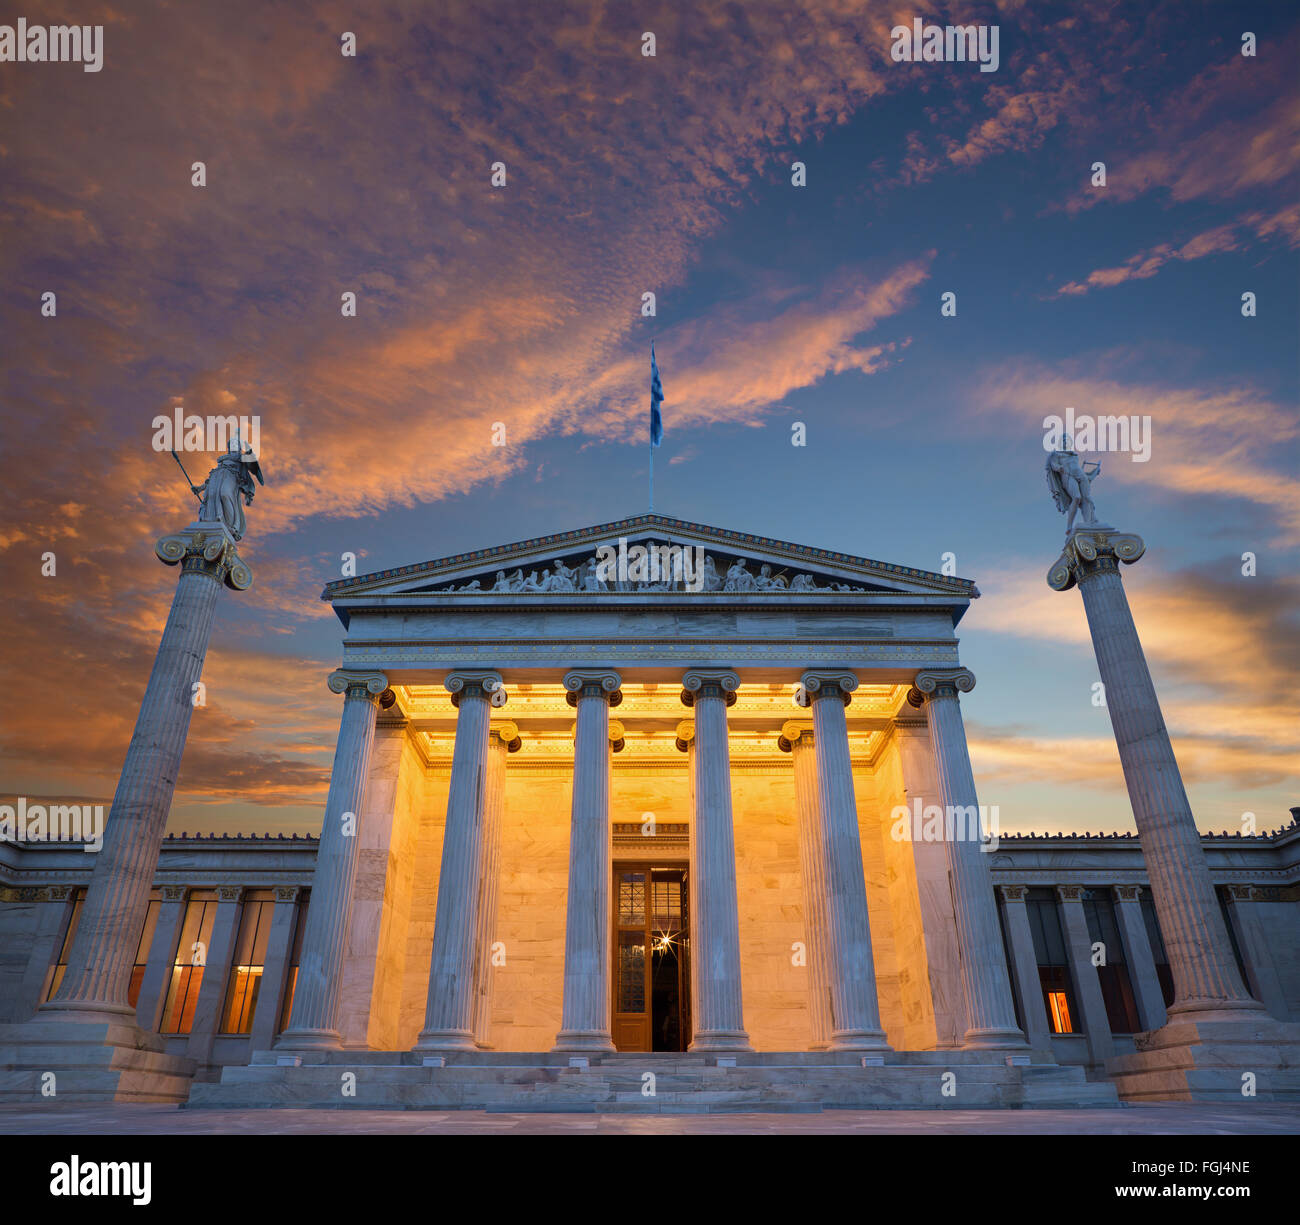 Athens - The National Academy building in morning dusk. - Stock Image